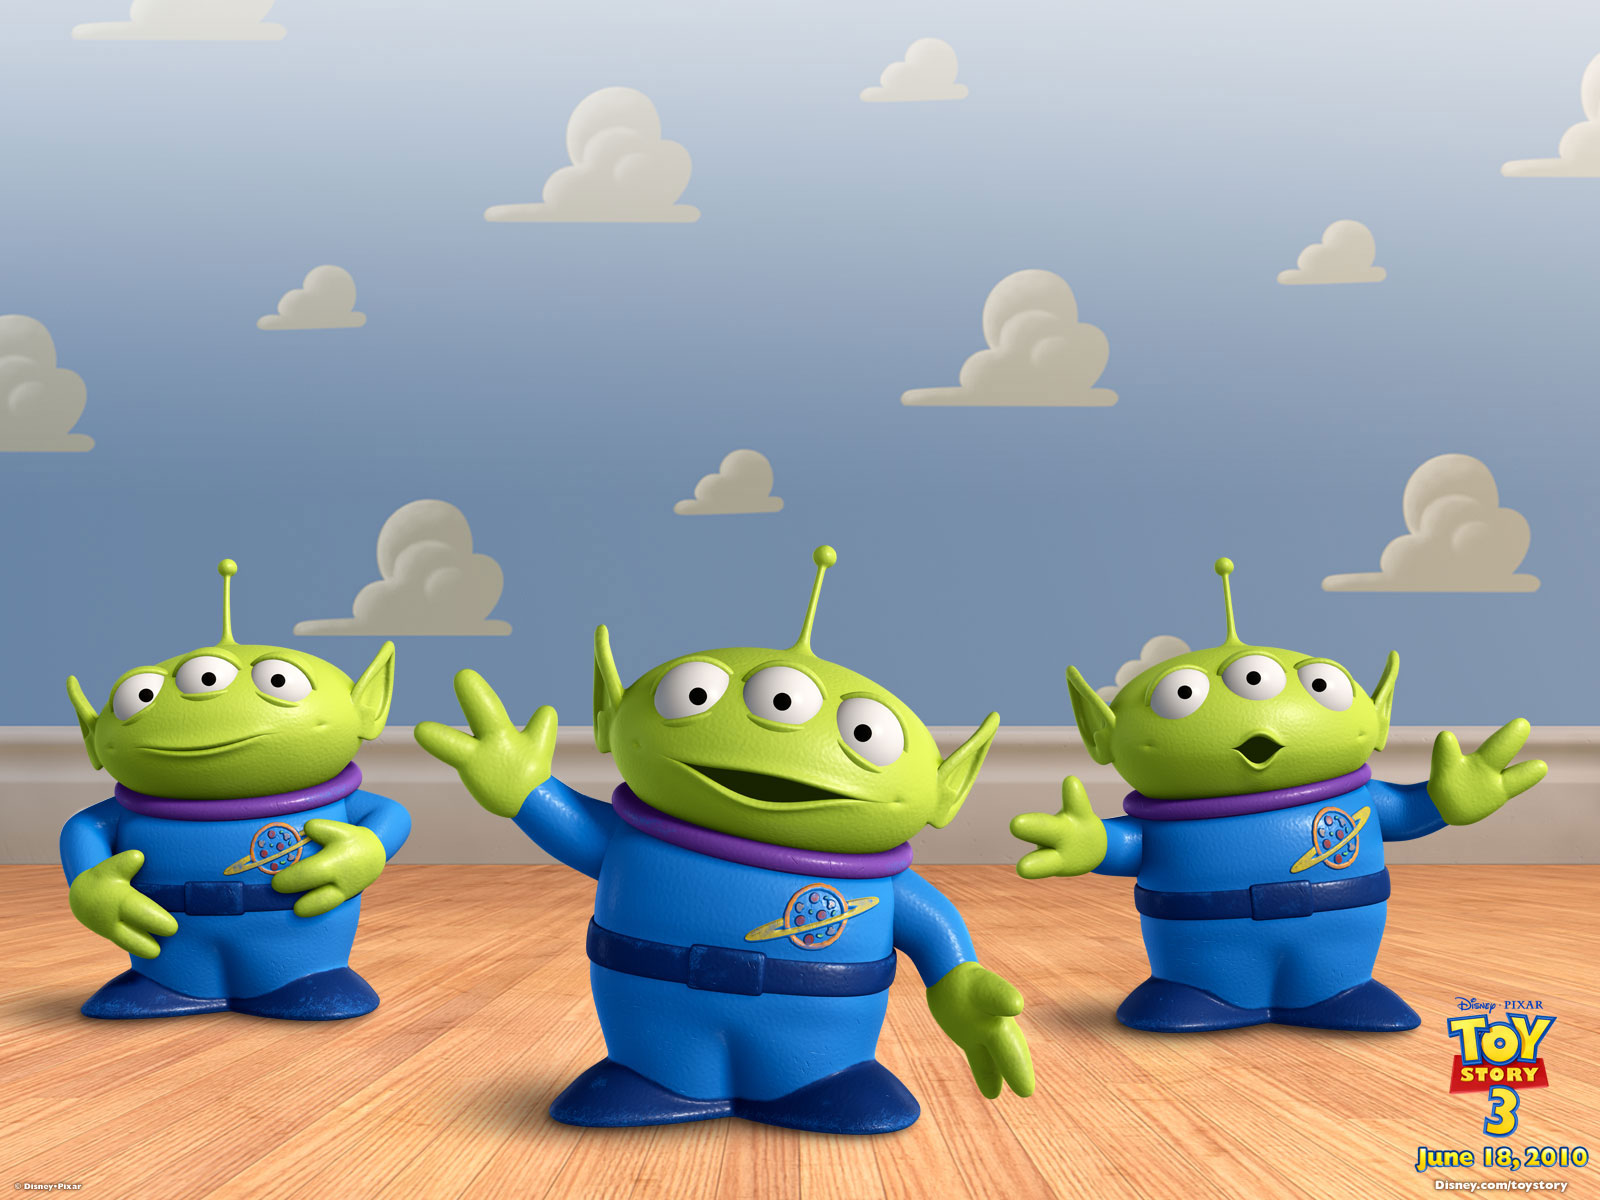 A cartoon shot of aliens